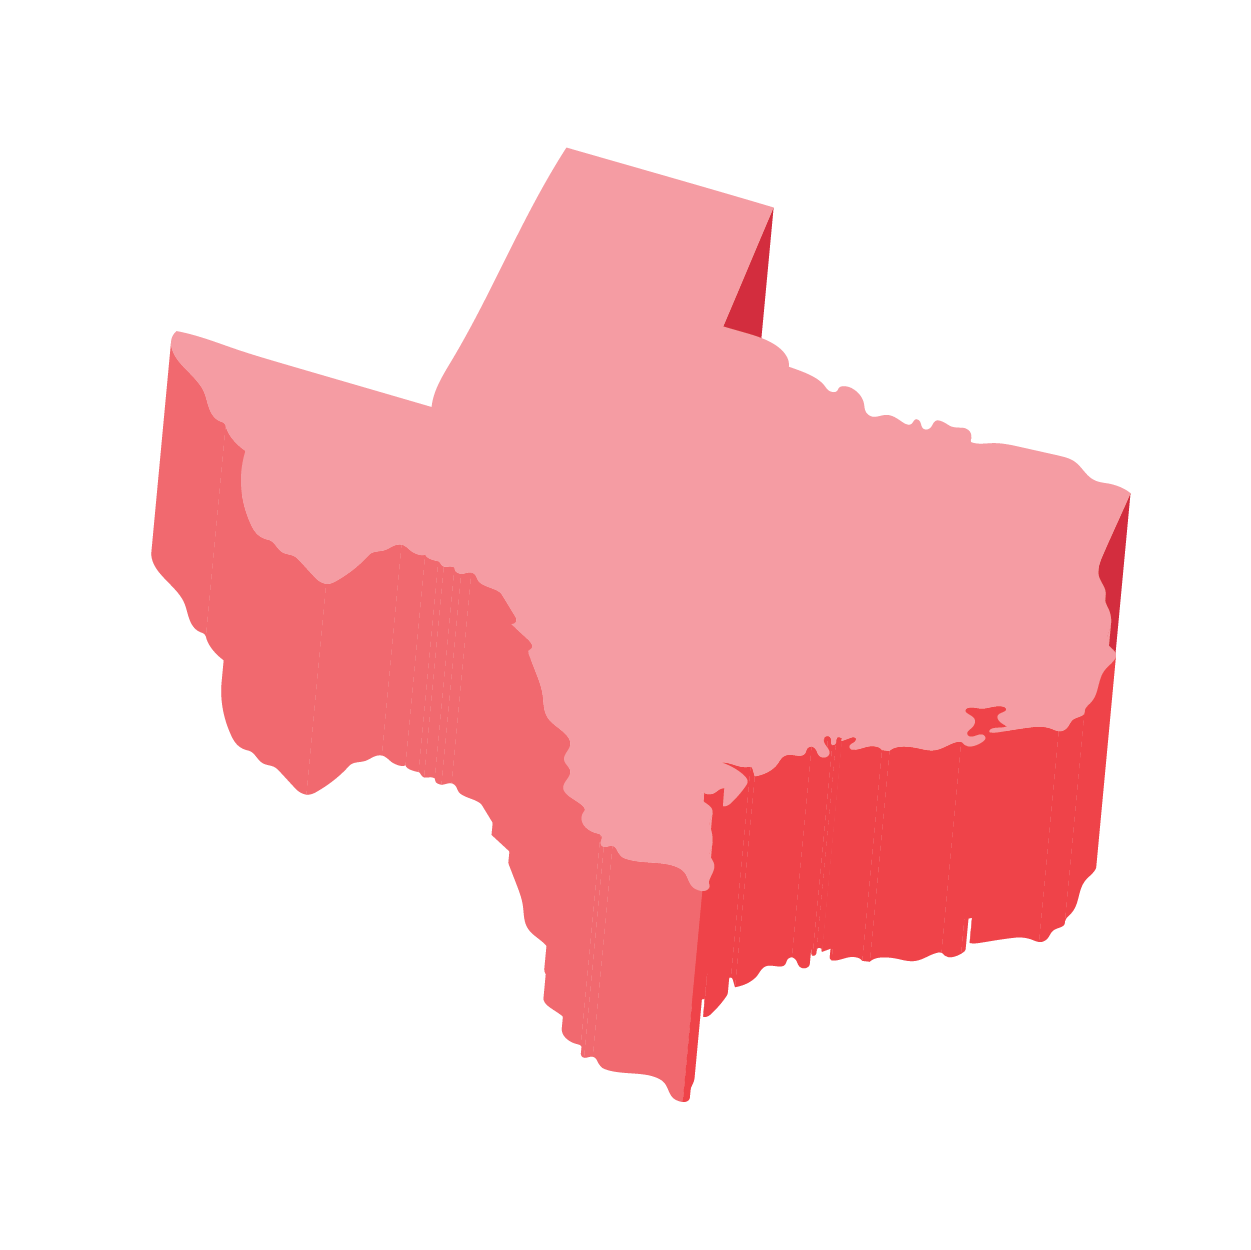 Texas_100820.png